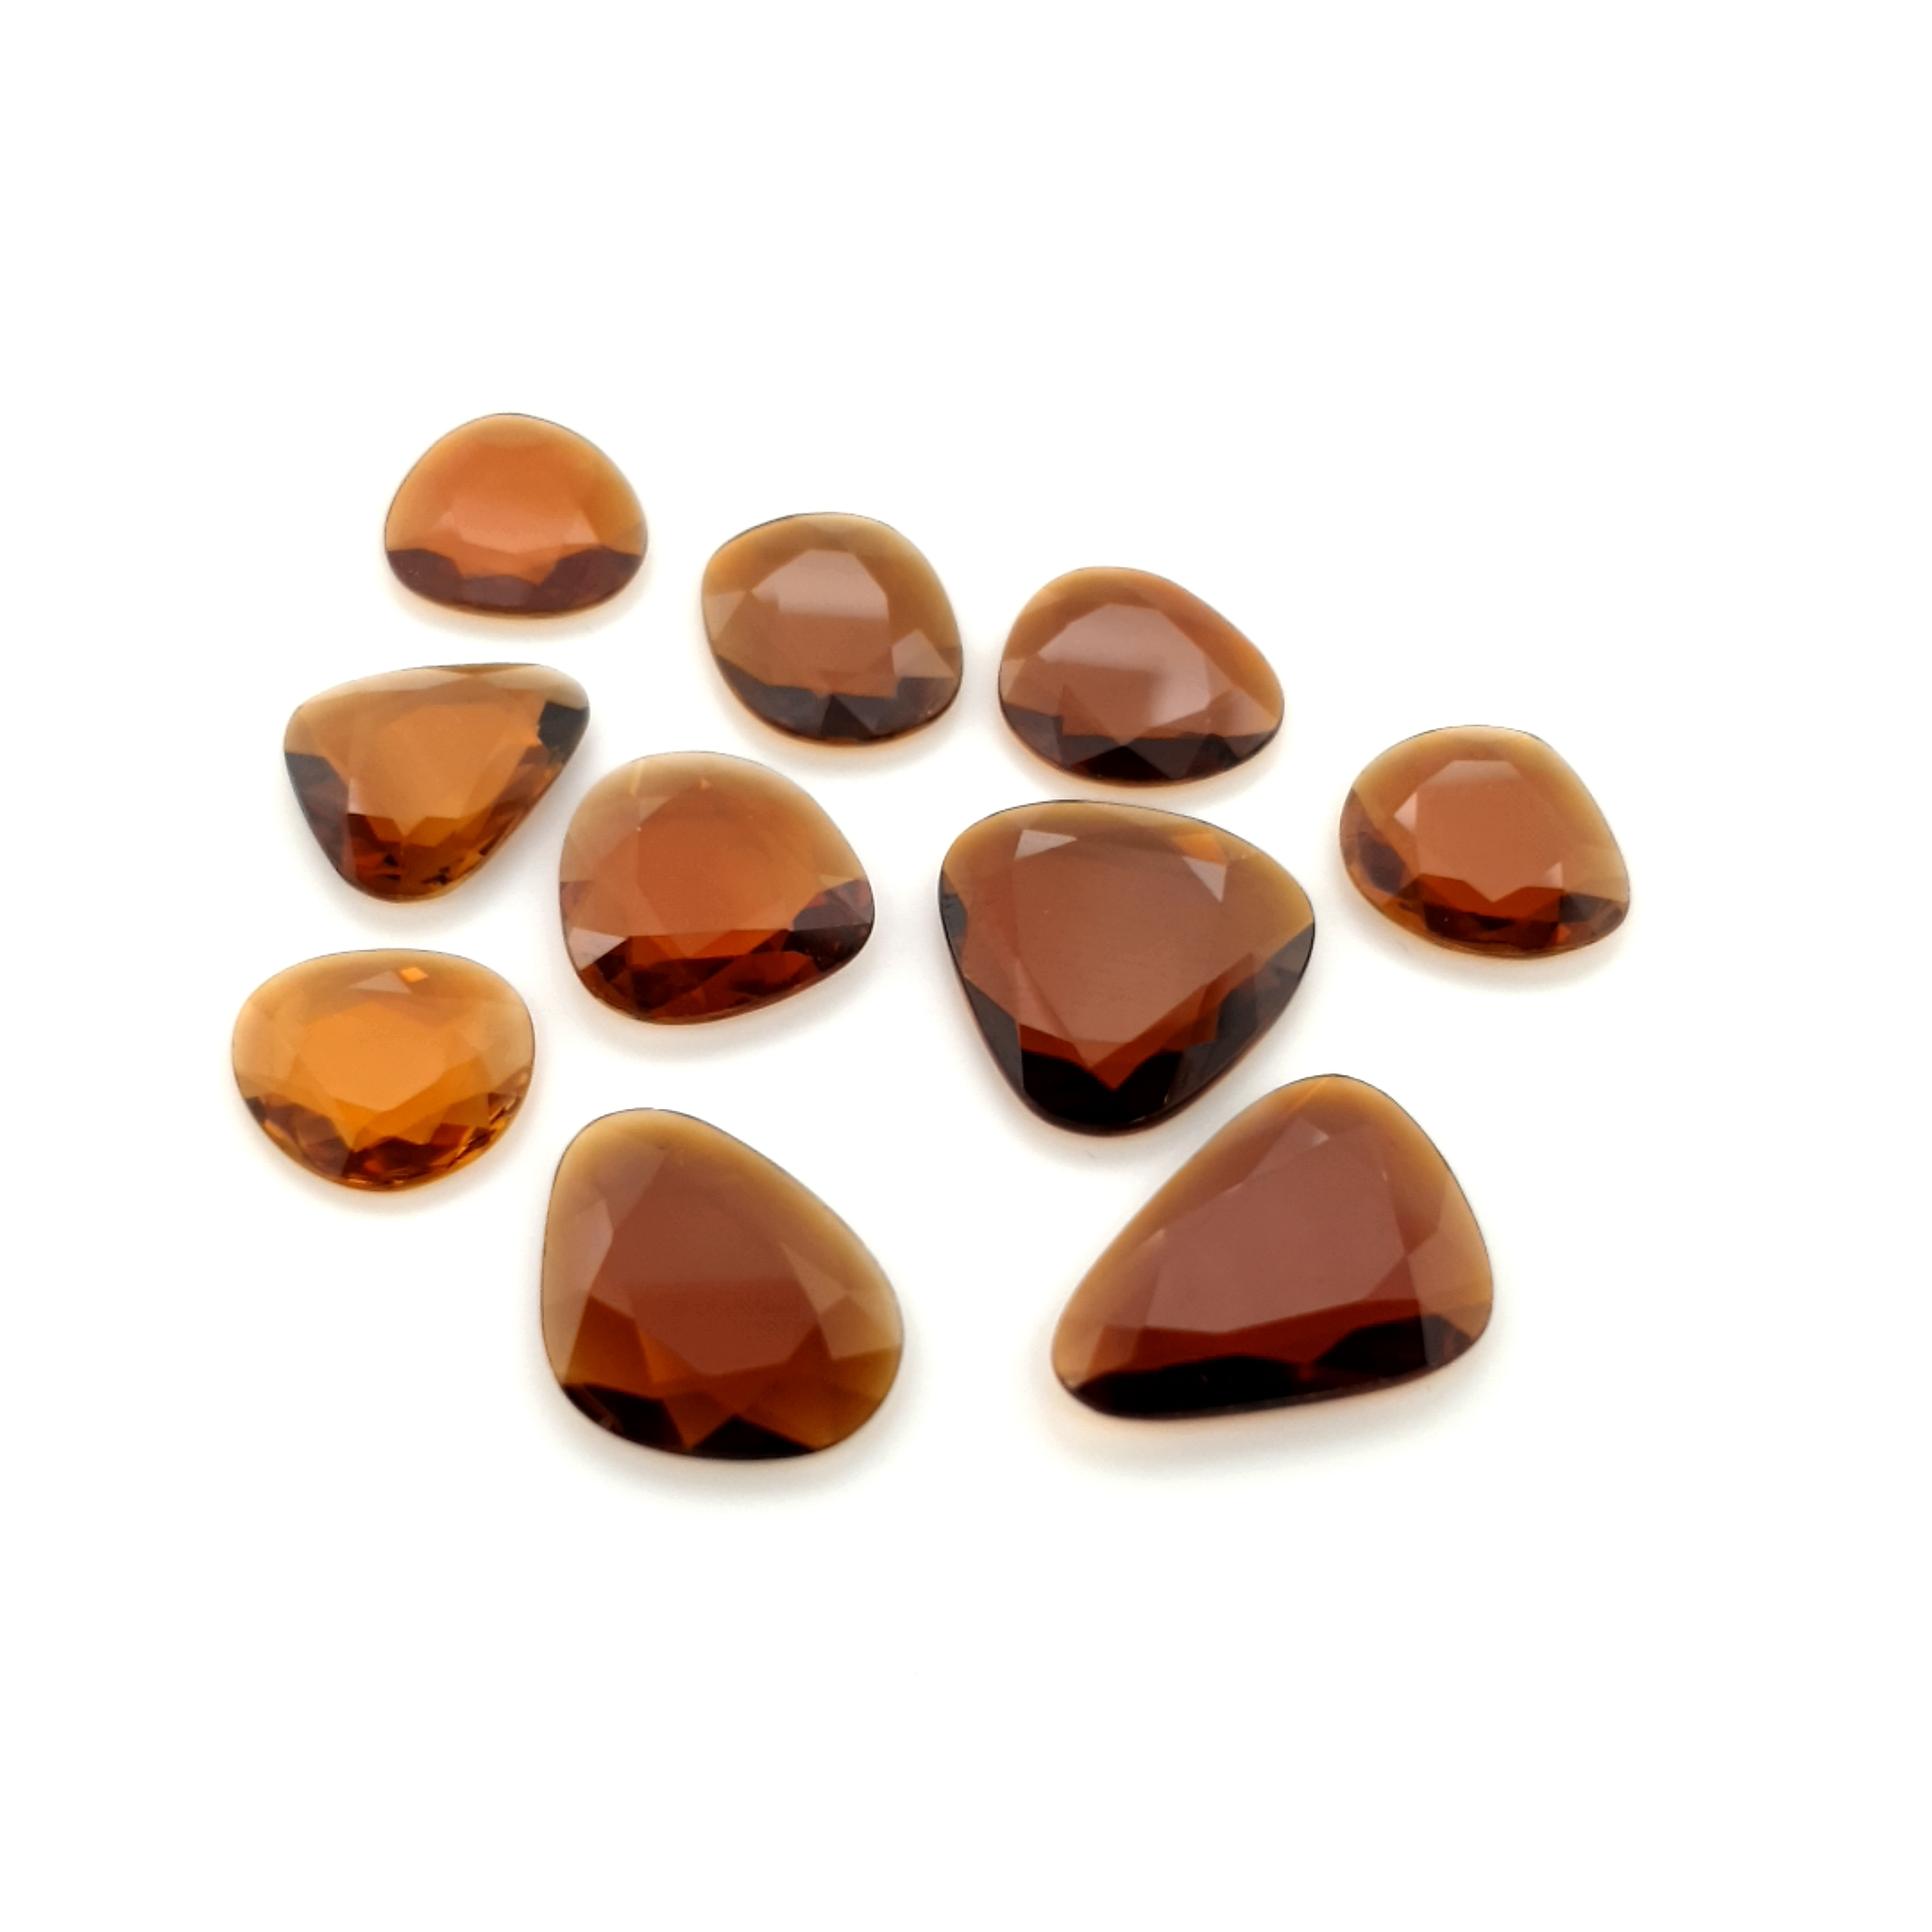 2,00-5,00ct.size Brown Tourmalin DoubleRoseCut TMF11C18 ClaudiaHamannEdelstein__2021-02-12-00-16-38